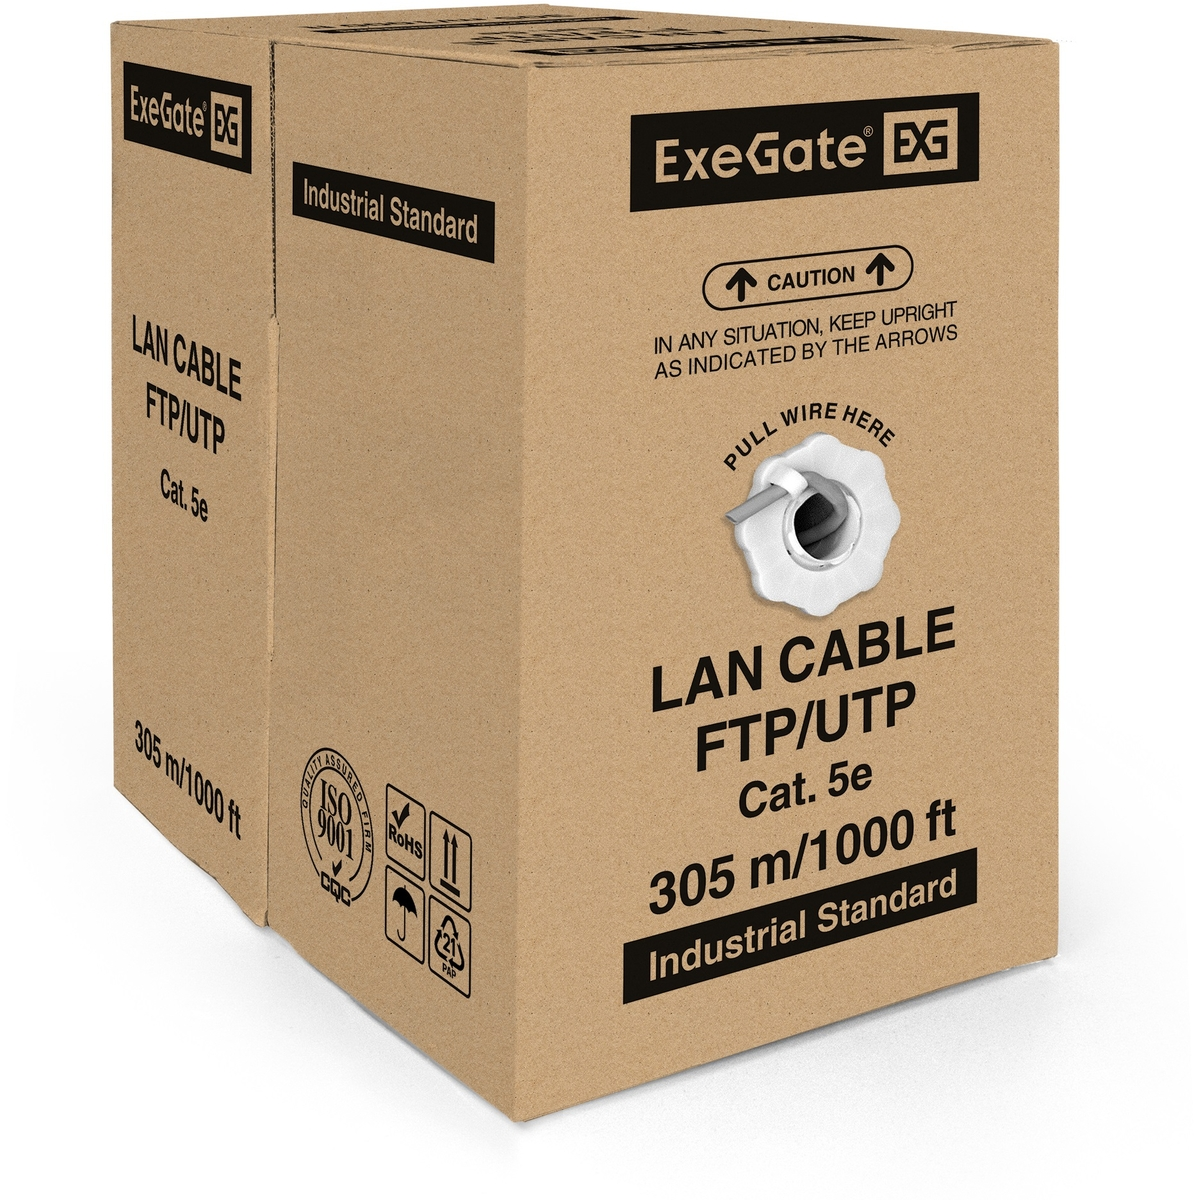 Cable ExeGate Special FUTP4-C5e-CU-S26-IN-PVC-GY-305 FTP